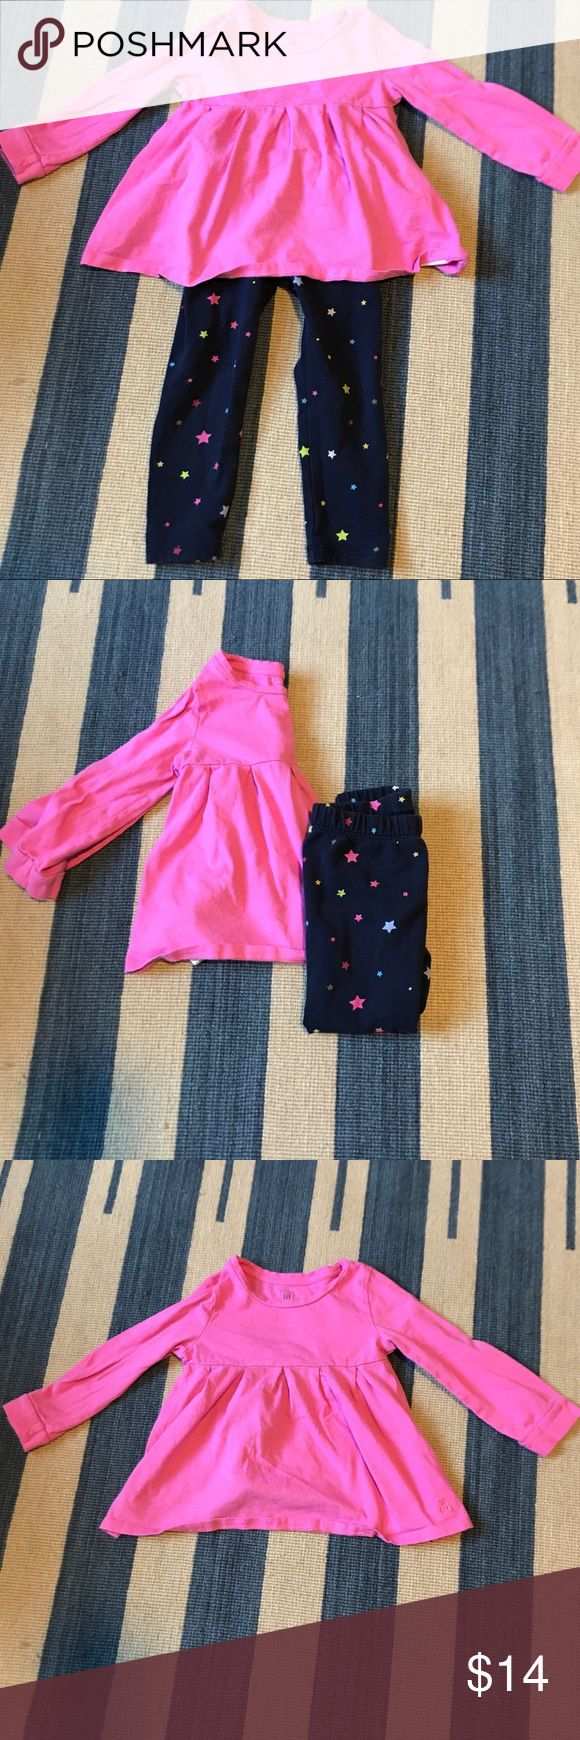 2 Piece GAP Girl's 3T Leggings and Tunic A bargain girl's 3T outfit from the Gap. One long sleeve jersey tunic in bright pink with a pair of soft Terry leggings in a galaxy print. The top is cute and looks great with other pants (black leggings, jeans, etc.). The leggings are substantial and soft. Made from French terry for all seasons.  In great used condition. Some fading from laundering. From a pet and smoke free home. GAP Matching Sets